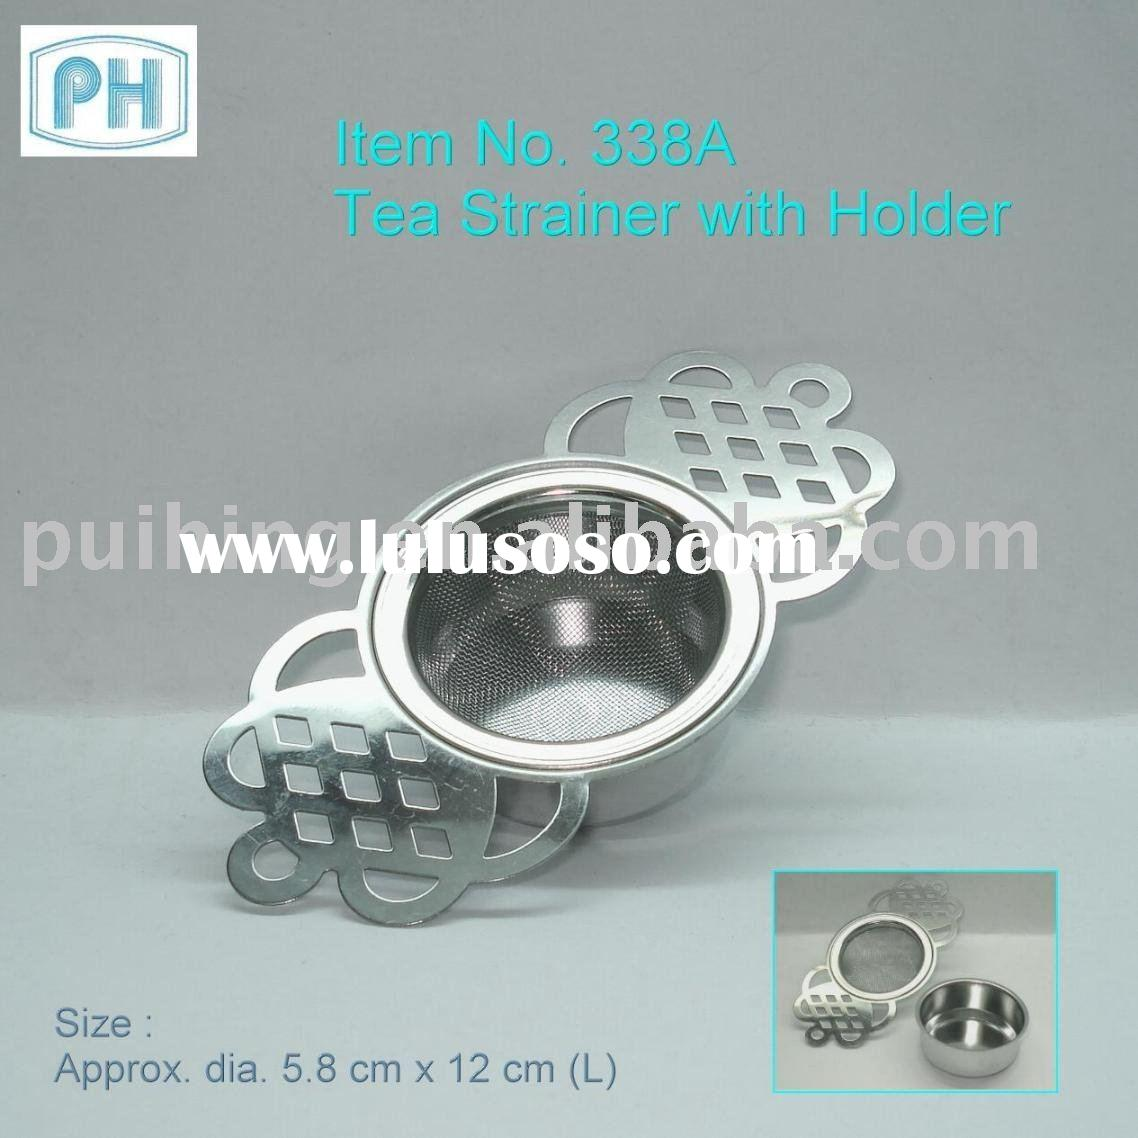 Stainless Steel Mesh Tea Strainer with Holder